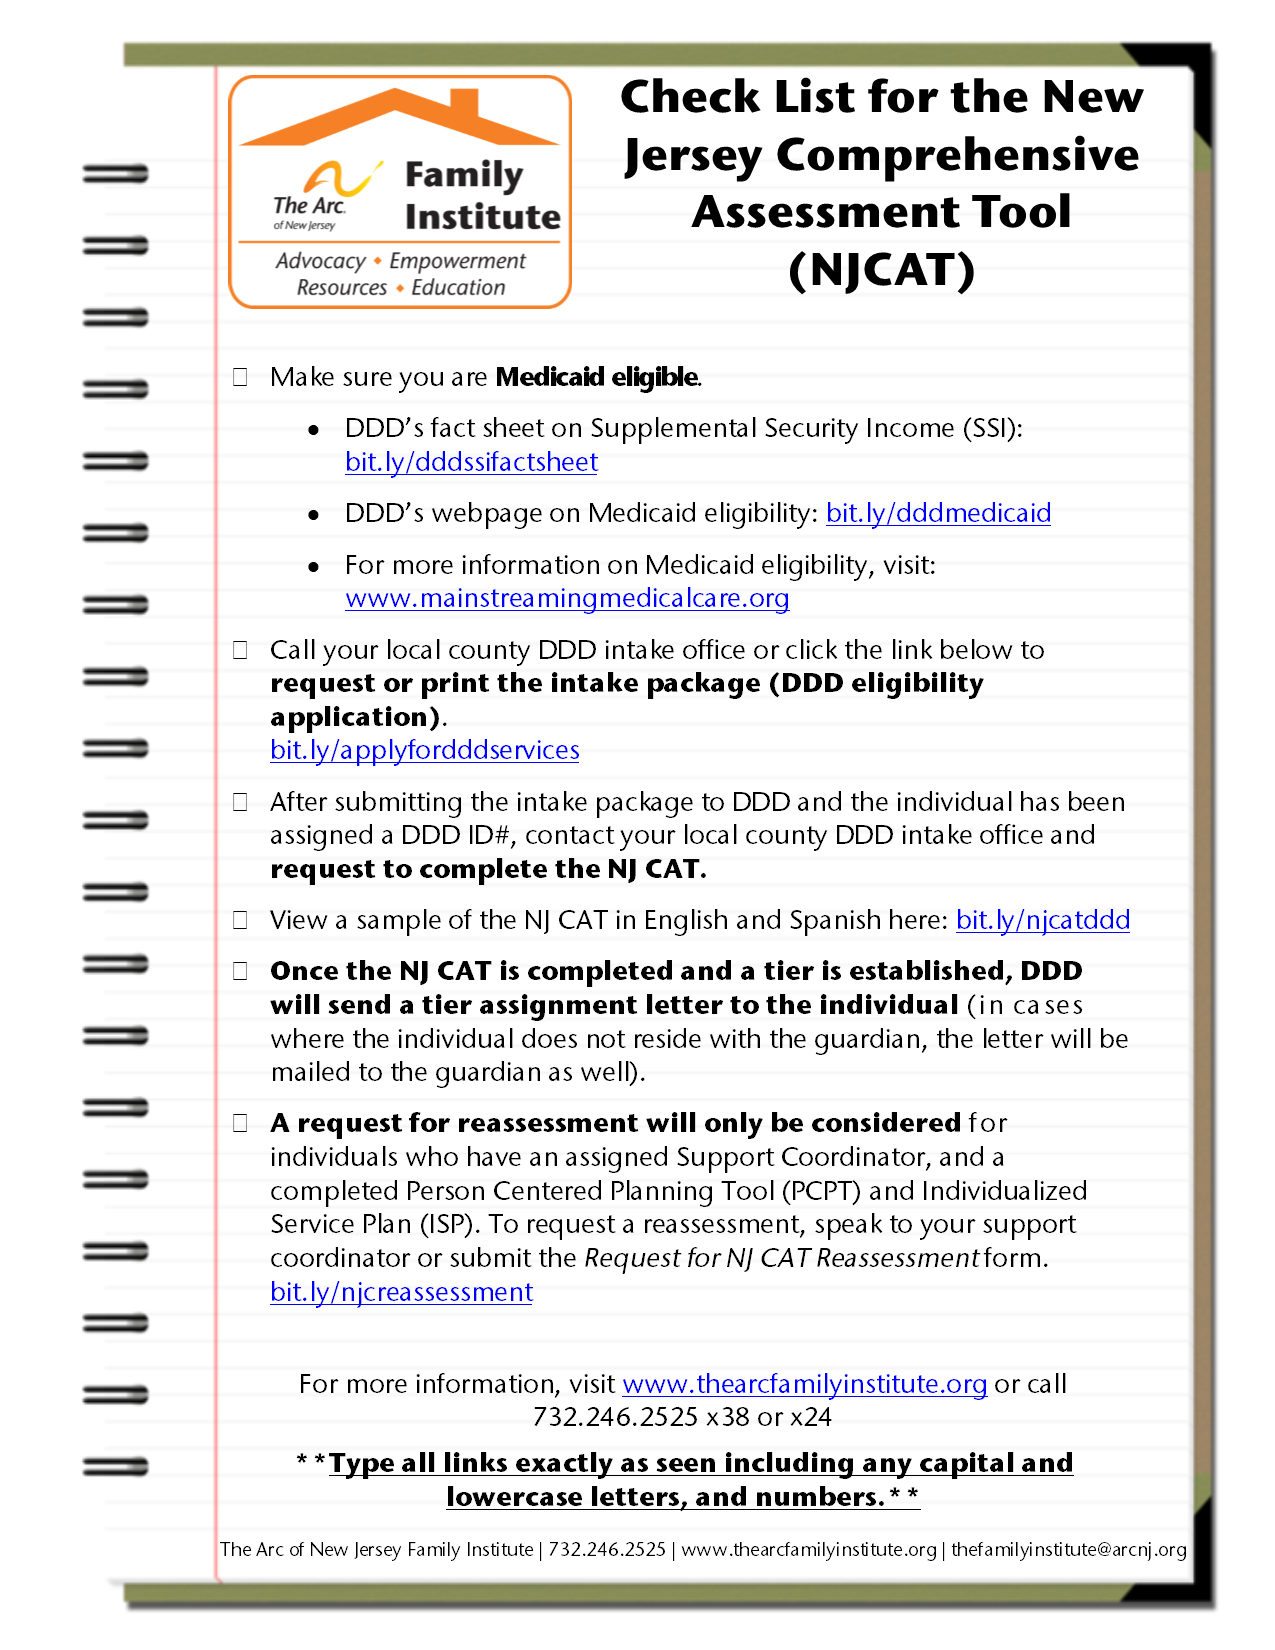 Check List for the New Jersey Comprehensive Assessment Tool (NJCAT) Checklist